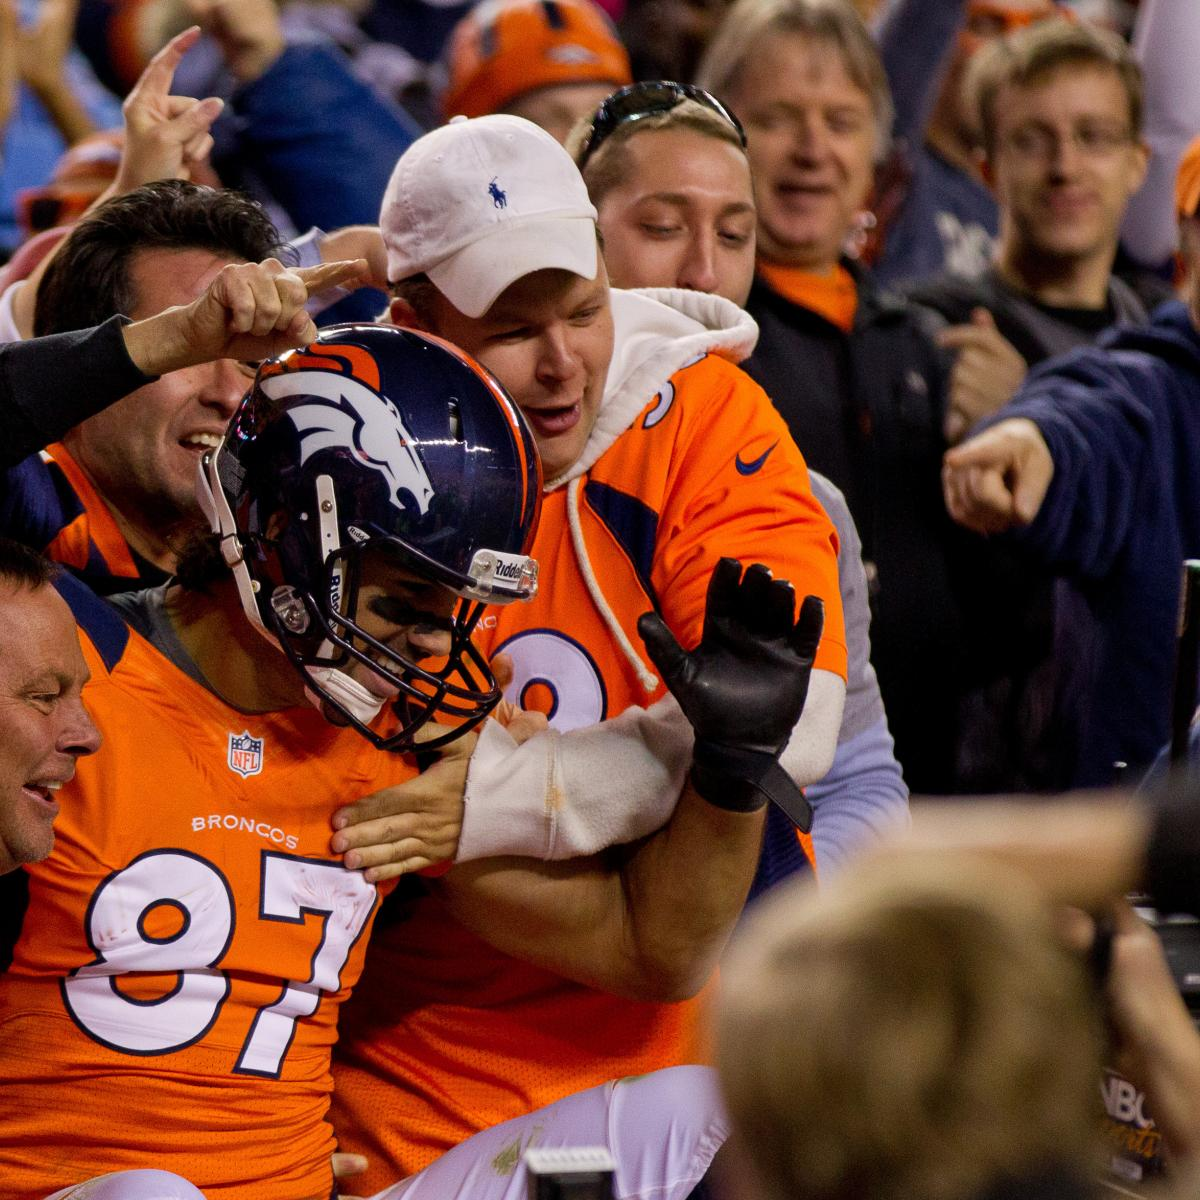 Denver To Hawaii: Things A Denver Broncos Fan Says